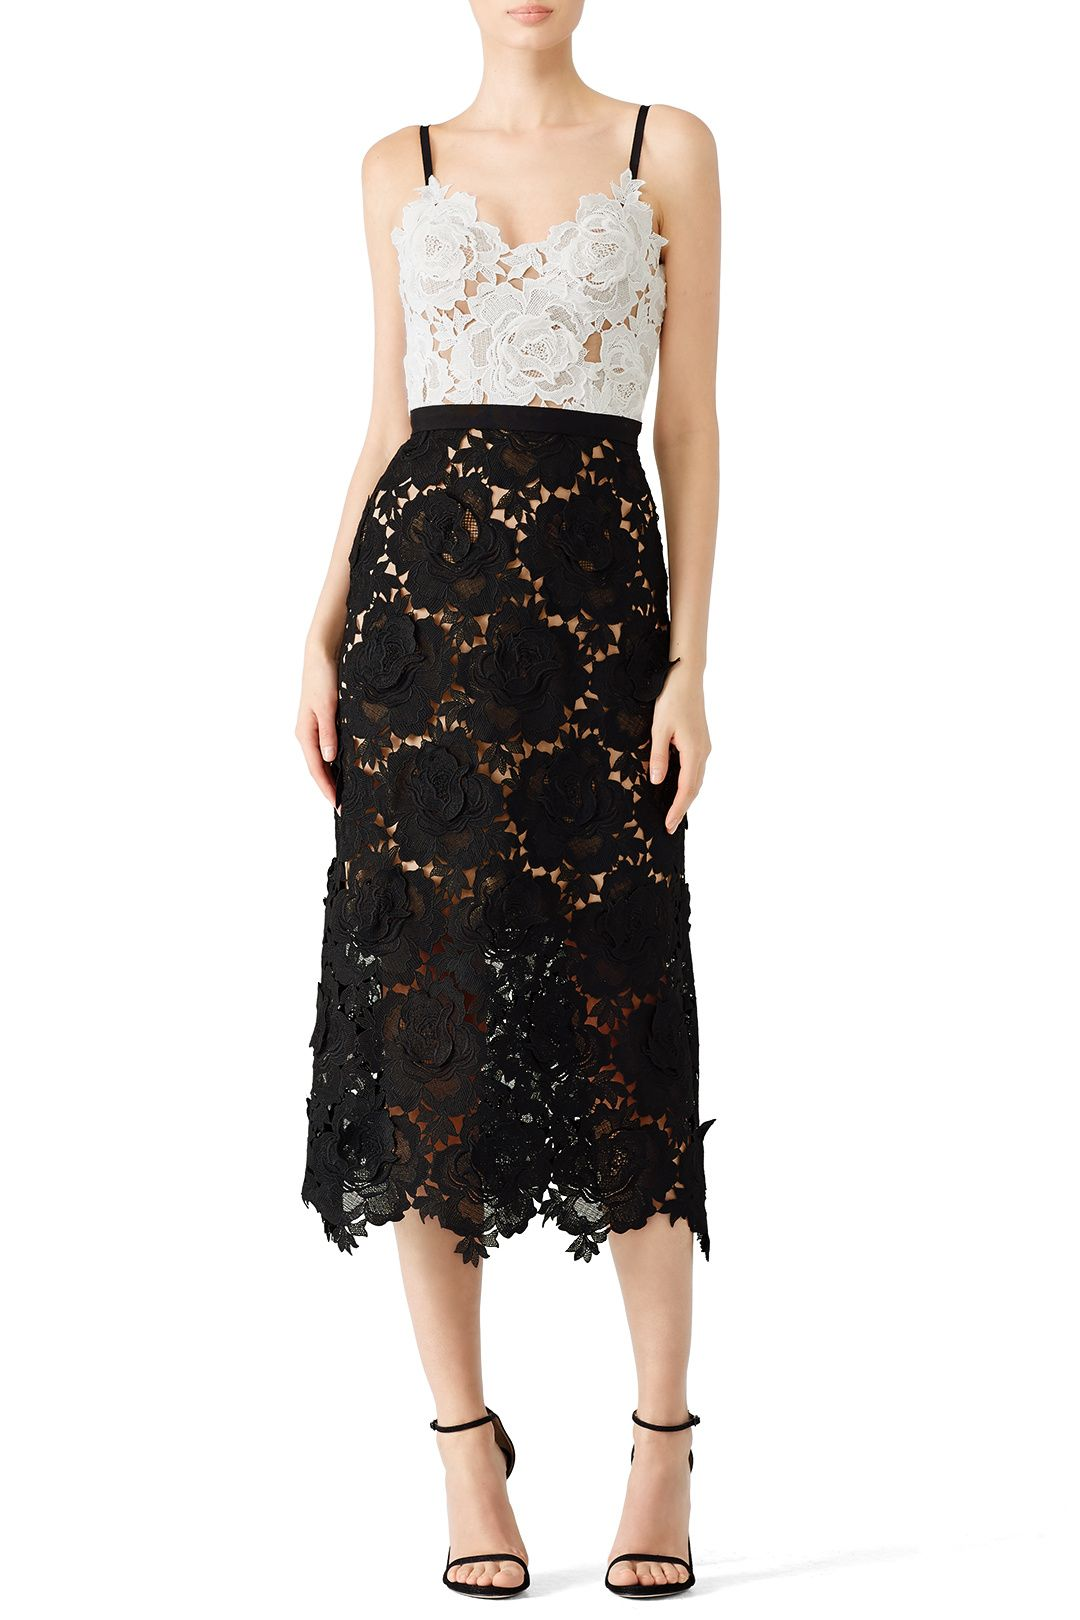 Rent Lace Frida Dress By Catherine Deane For 120 Only At Rent The Runway Maxi Dress Cocktail Dresses Stunning Dresses